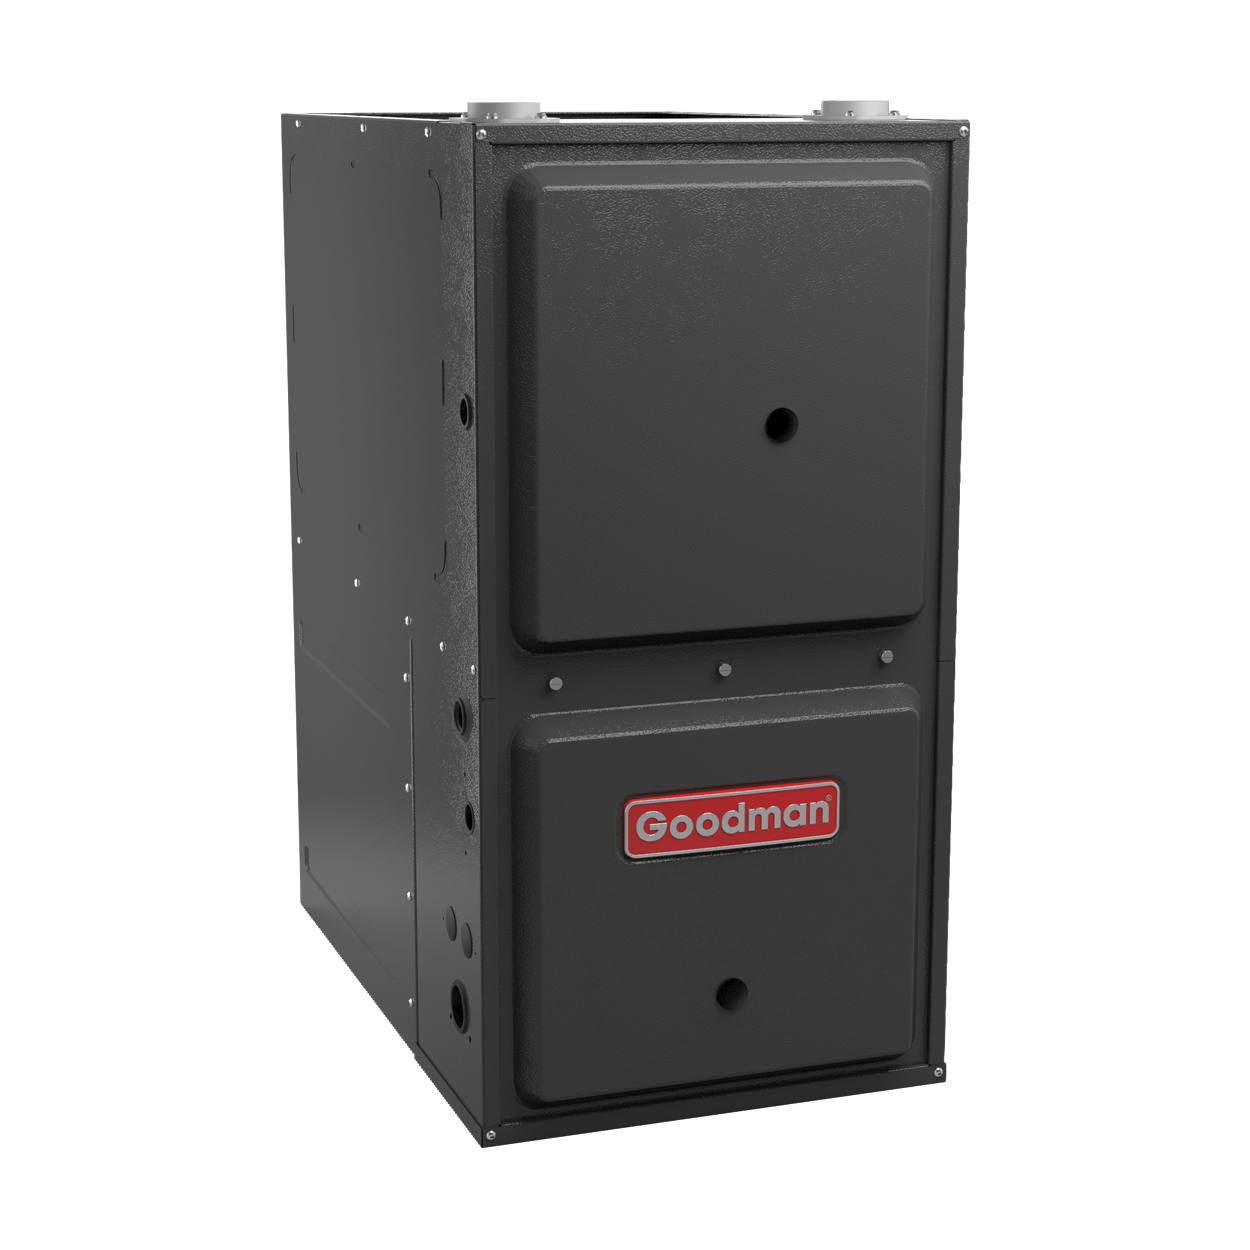 "HVAC Direct Comfort by Goodman DC-GCSS Series Gas Furnace - 96% AFUE - 100K BTU - 1 Speed - Downflow/Horizontal - 21"" Cabinet"